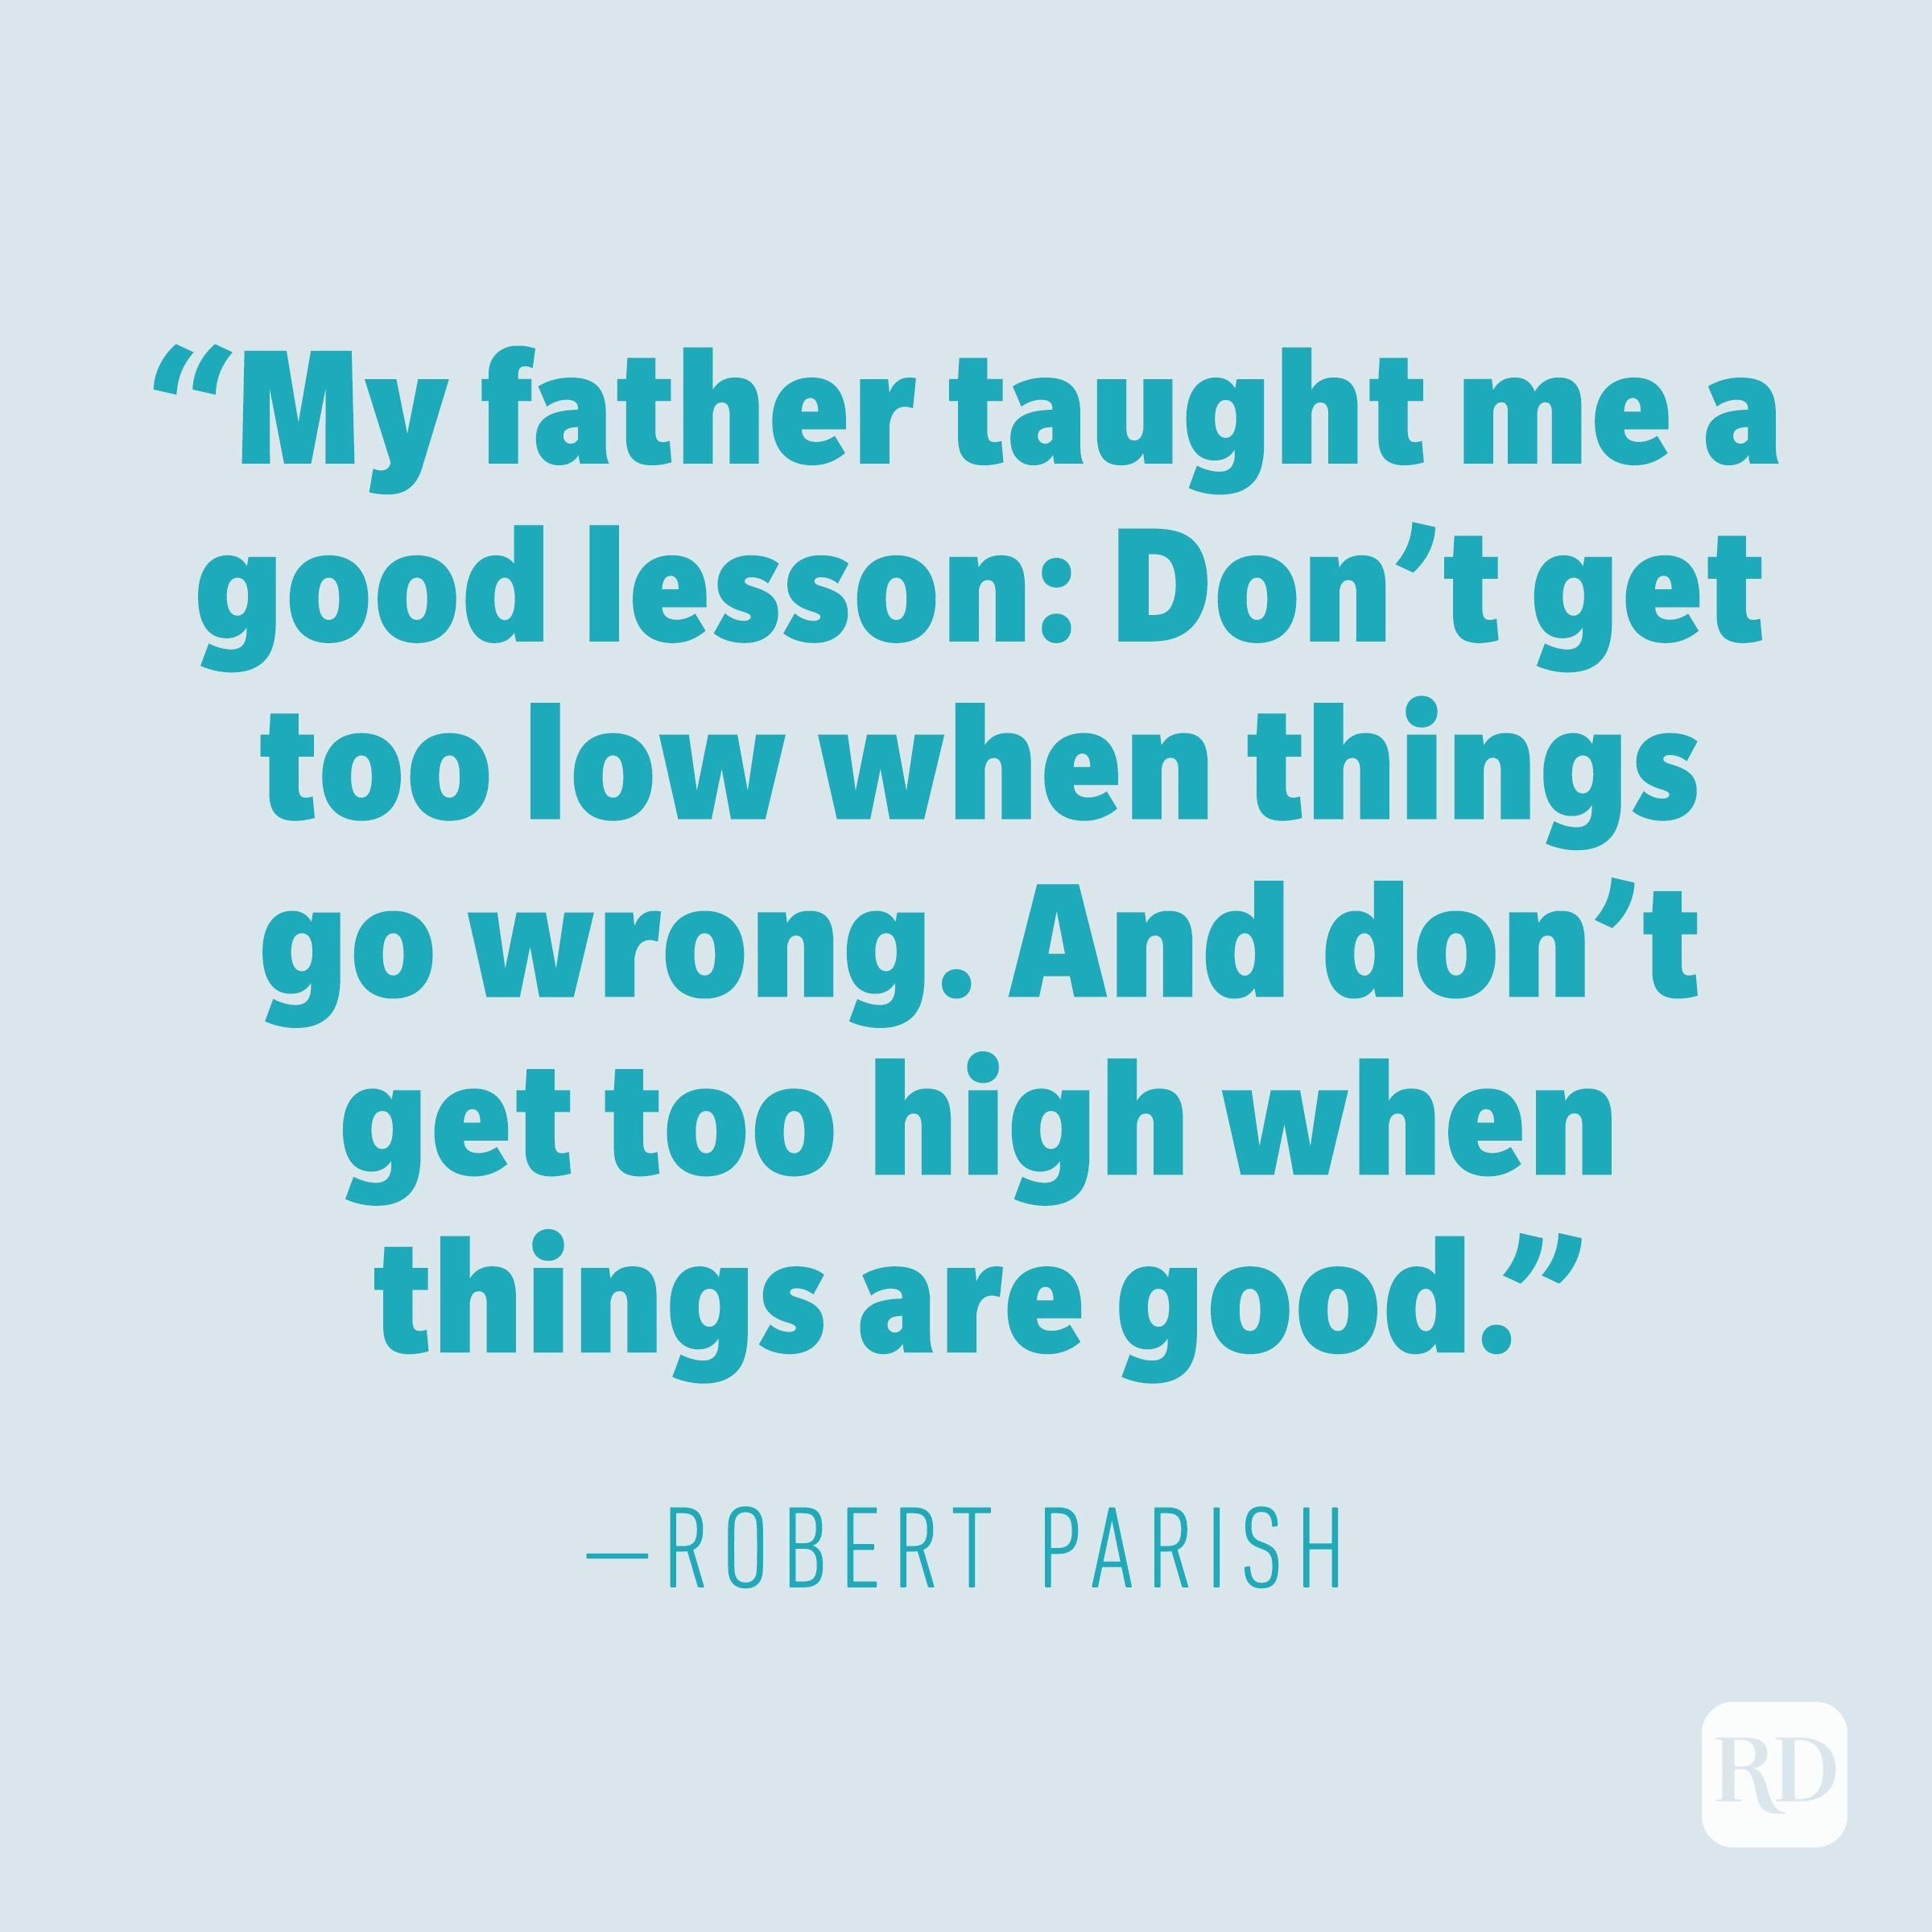 Robert Parish quote